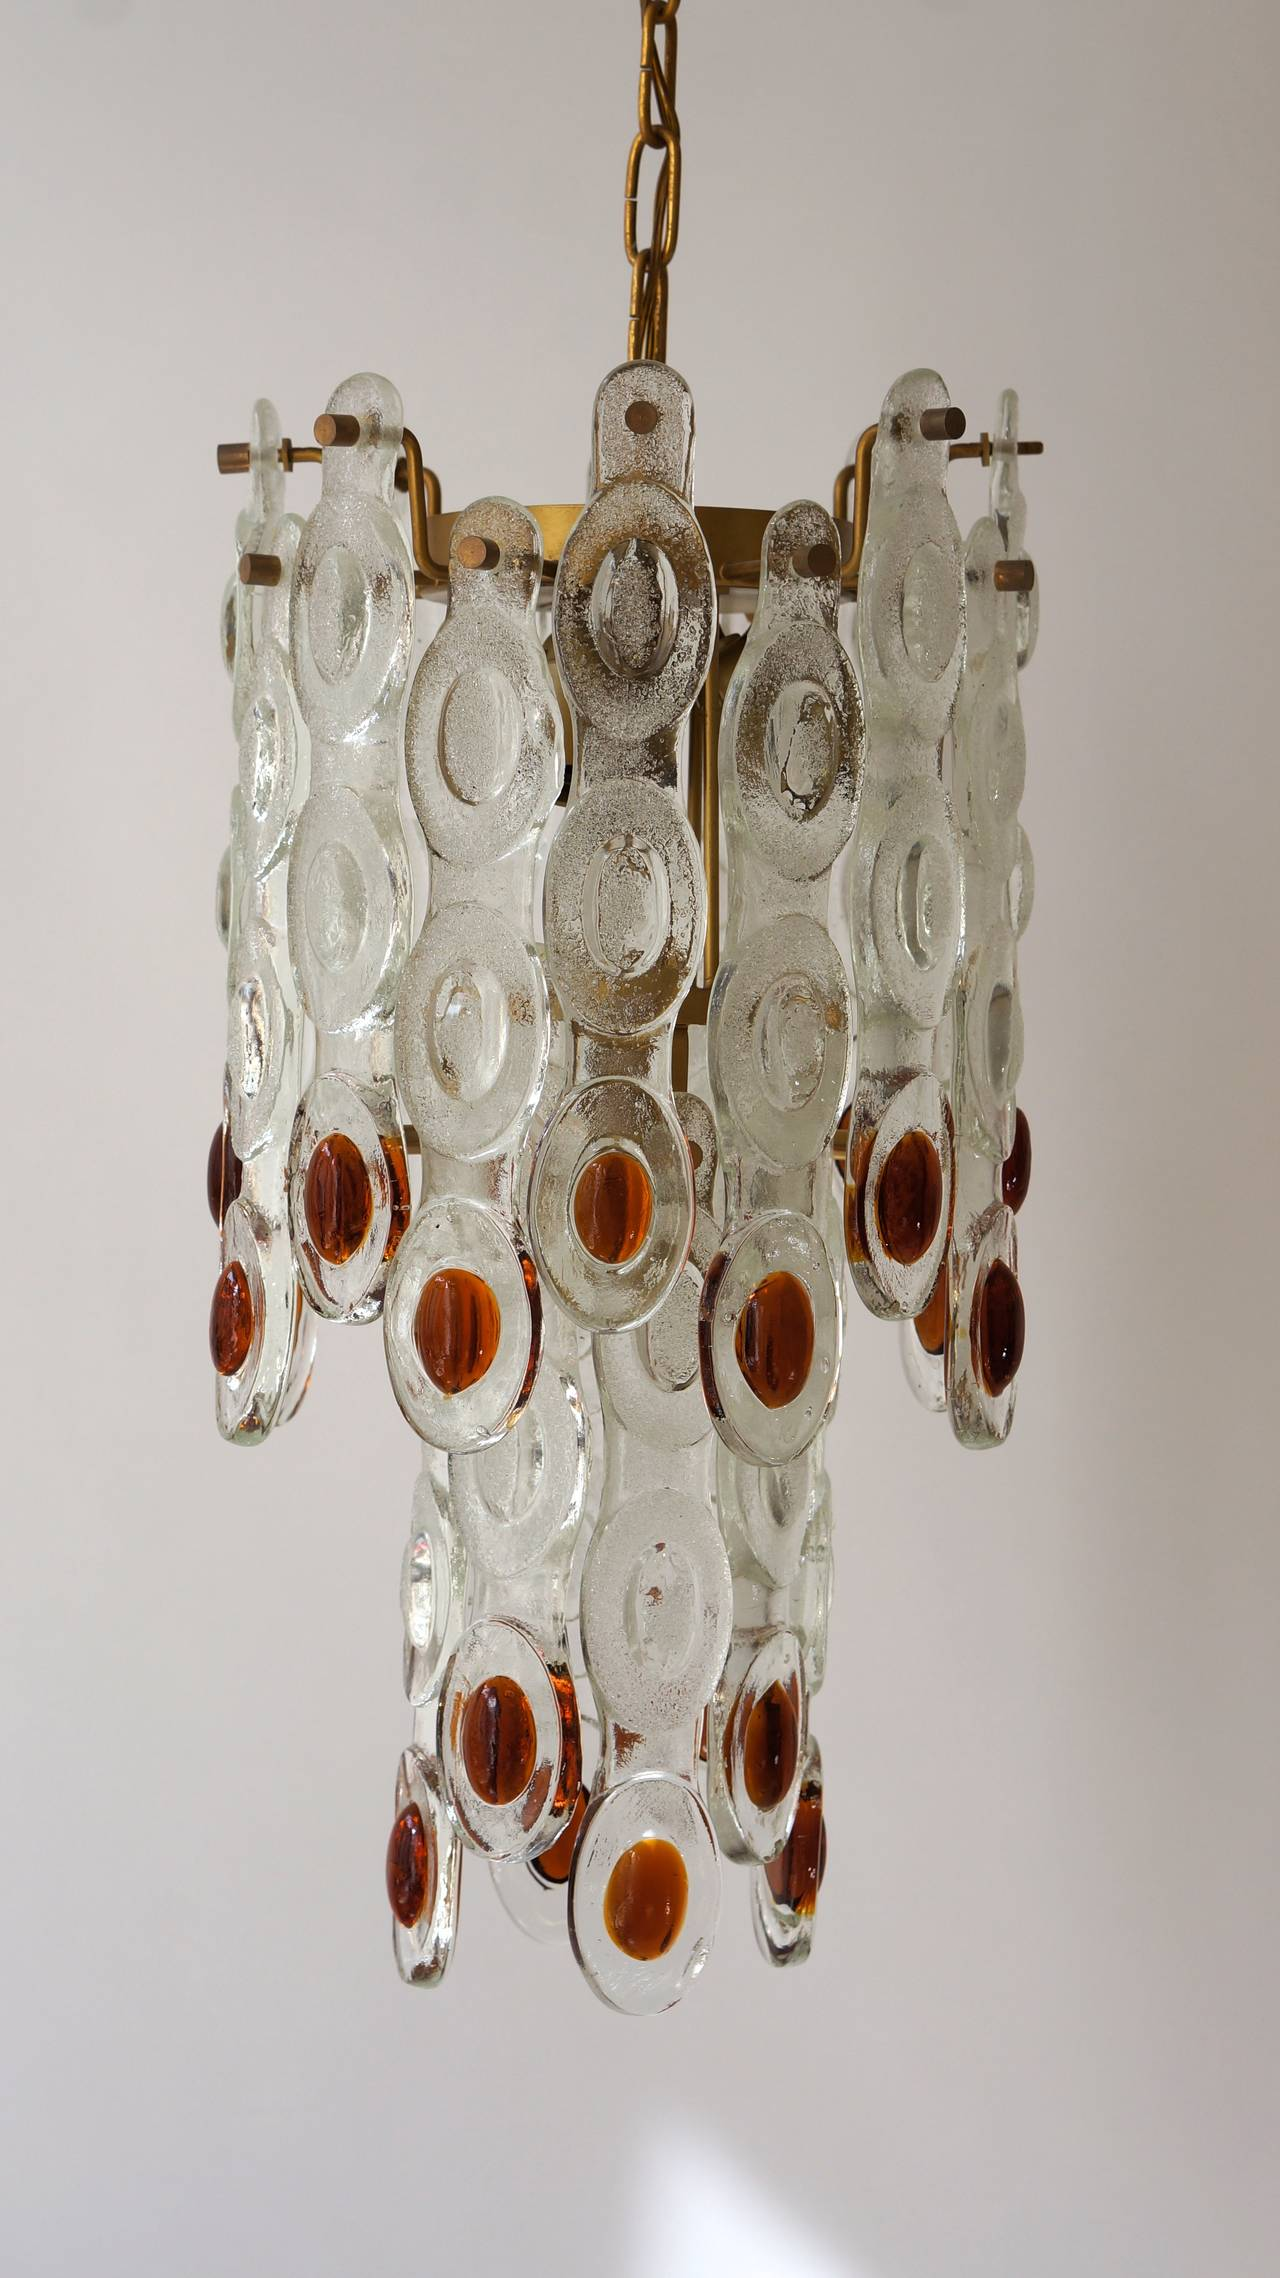 Amber and Clear Murano Glass Chandelier Attributed to Mazzega 4